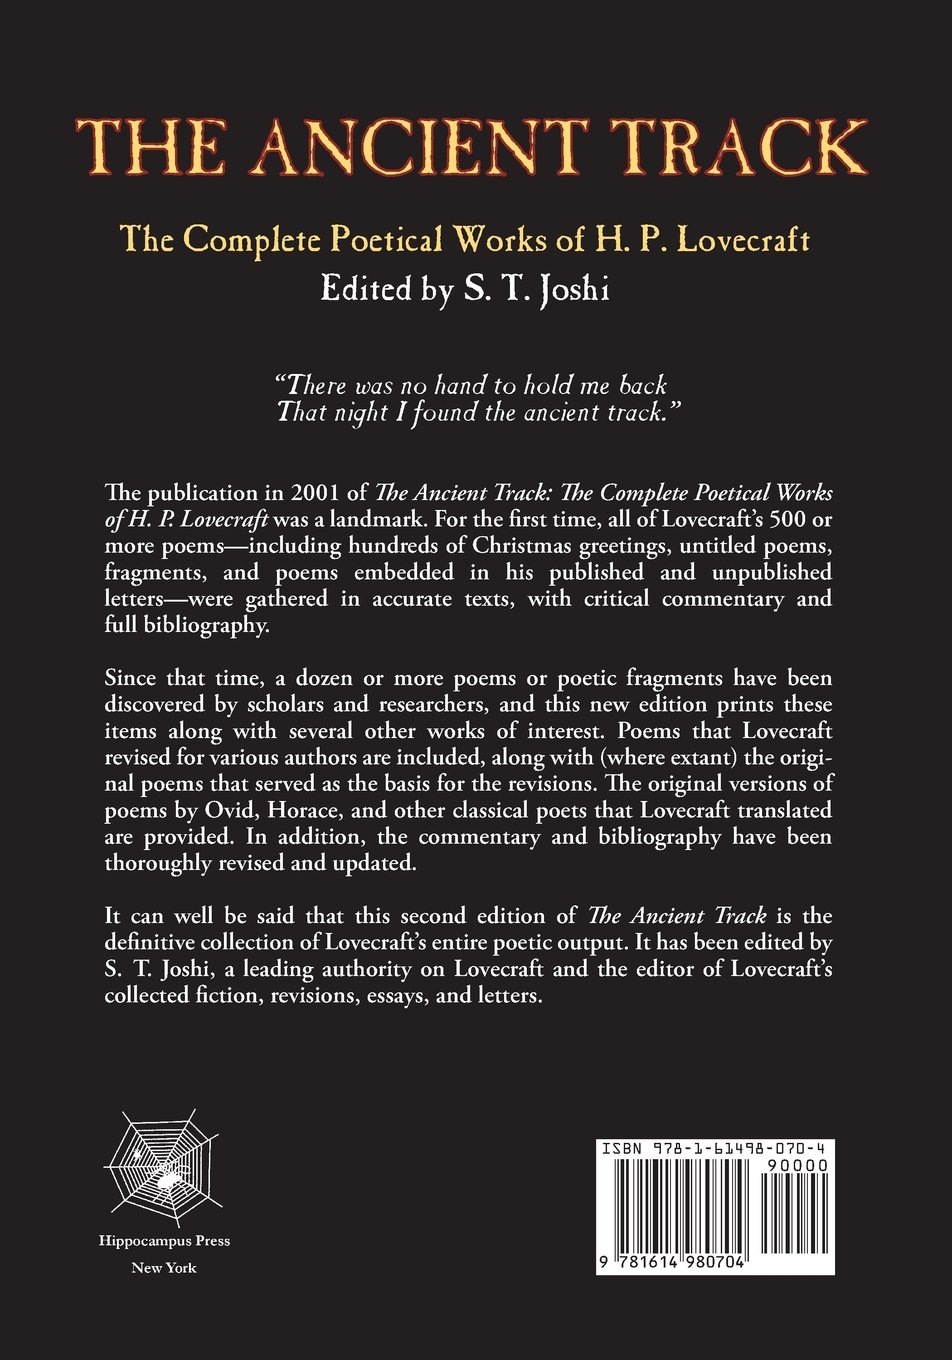 the ancient track the complete poetical works of h p lovecraft the ancient track the complete poetical works of h p lovecraft h p lovecraft s t joshi 9781614980704 com books